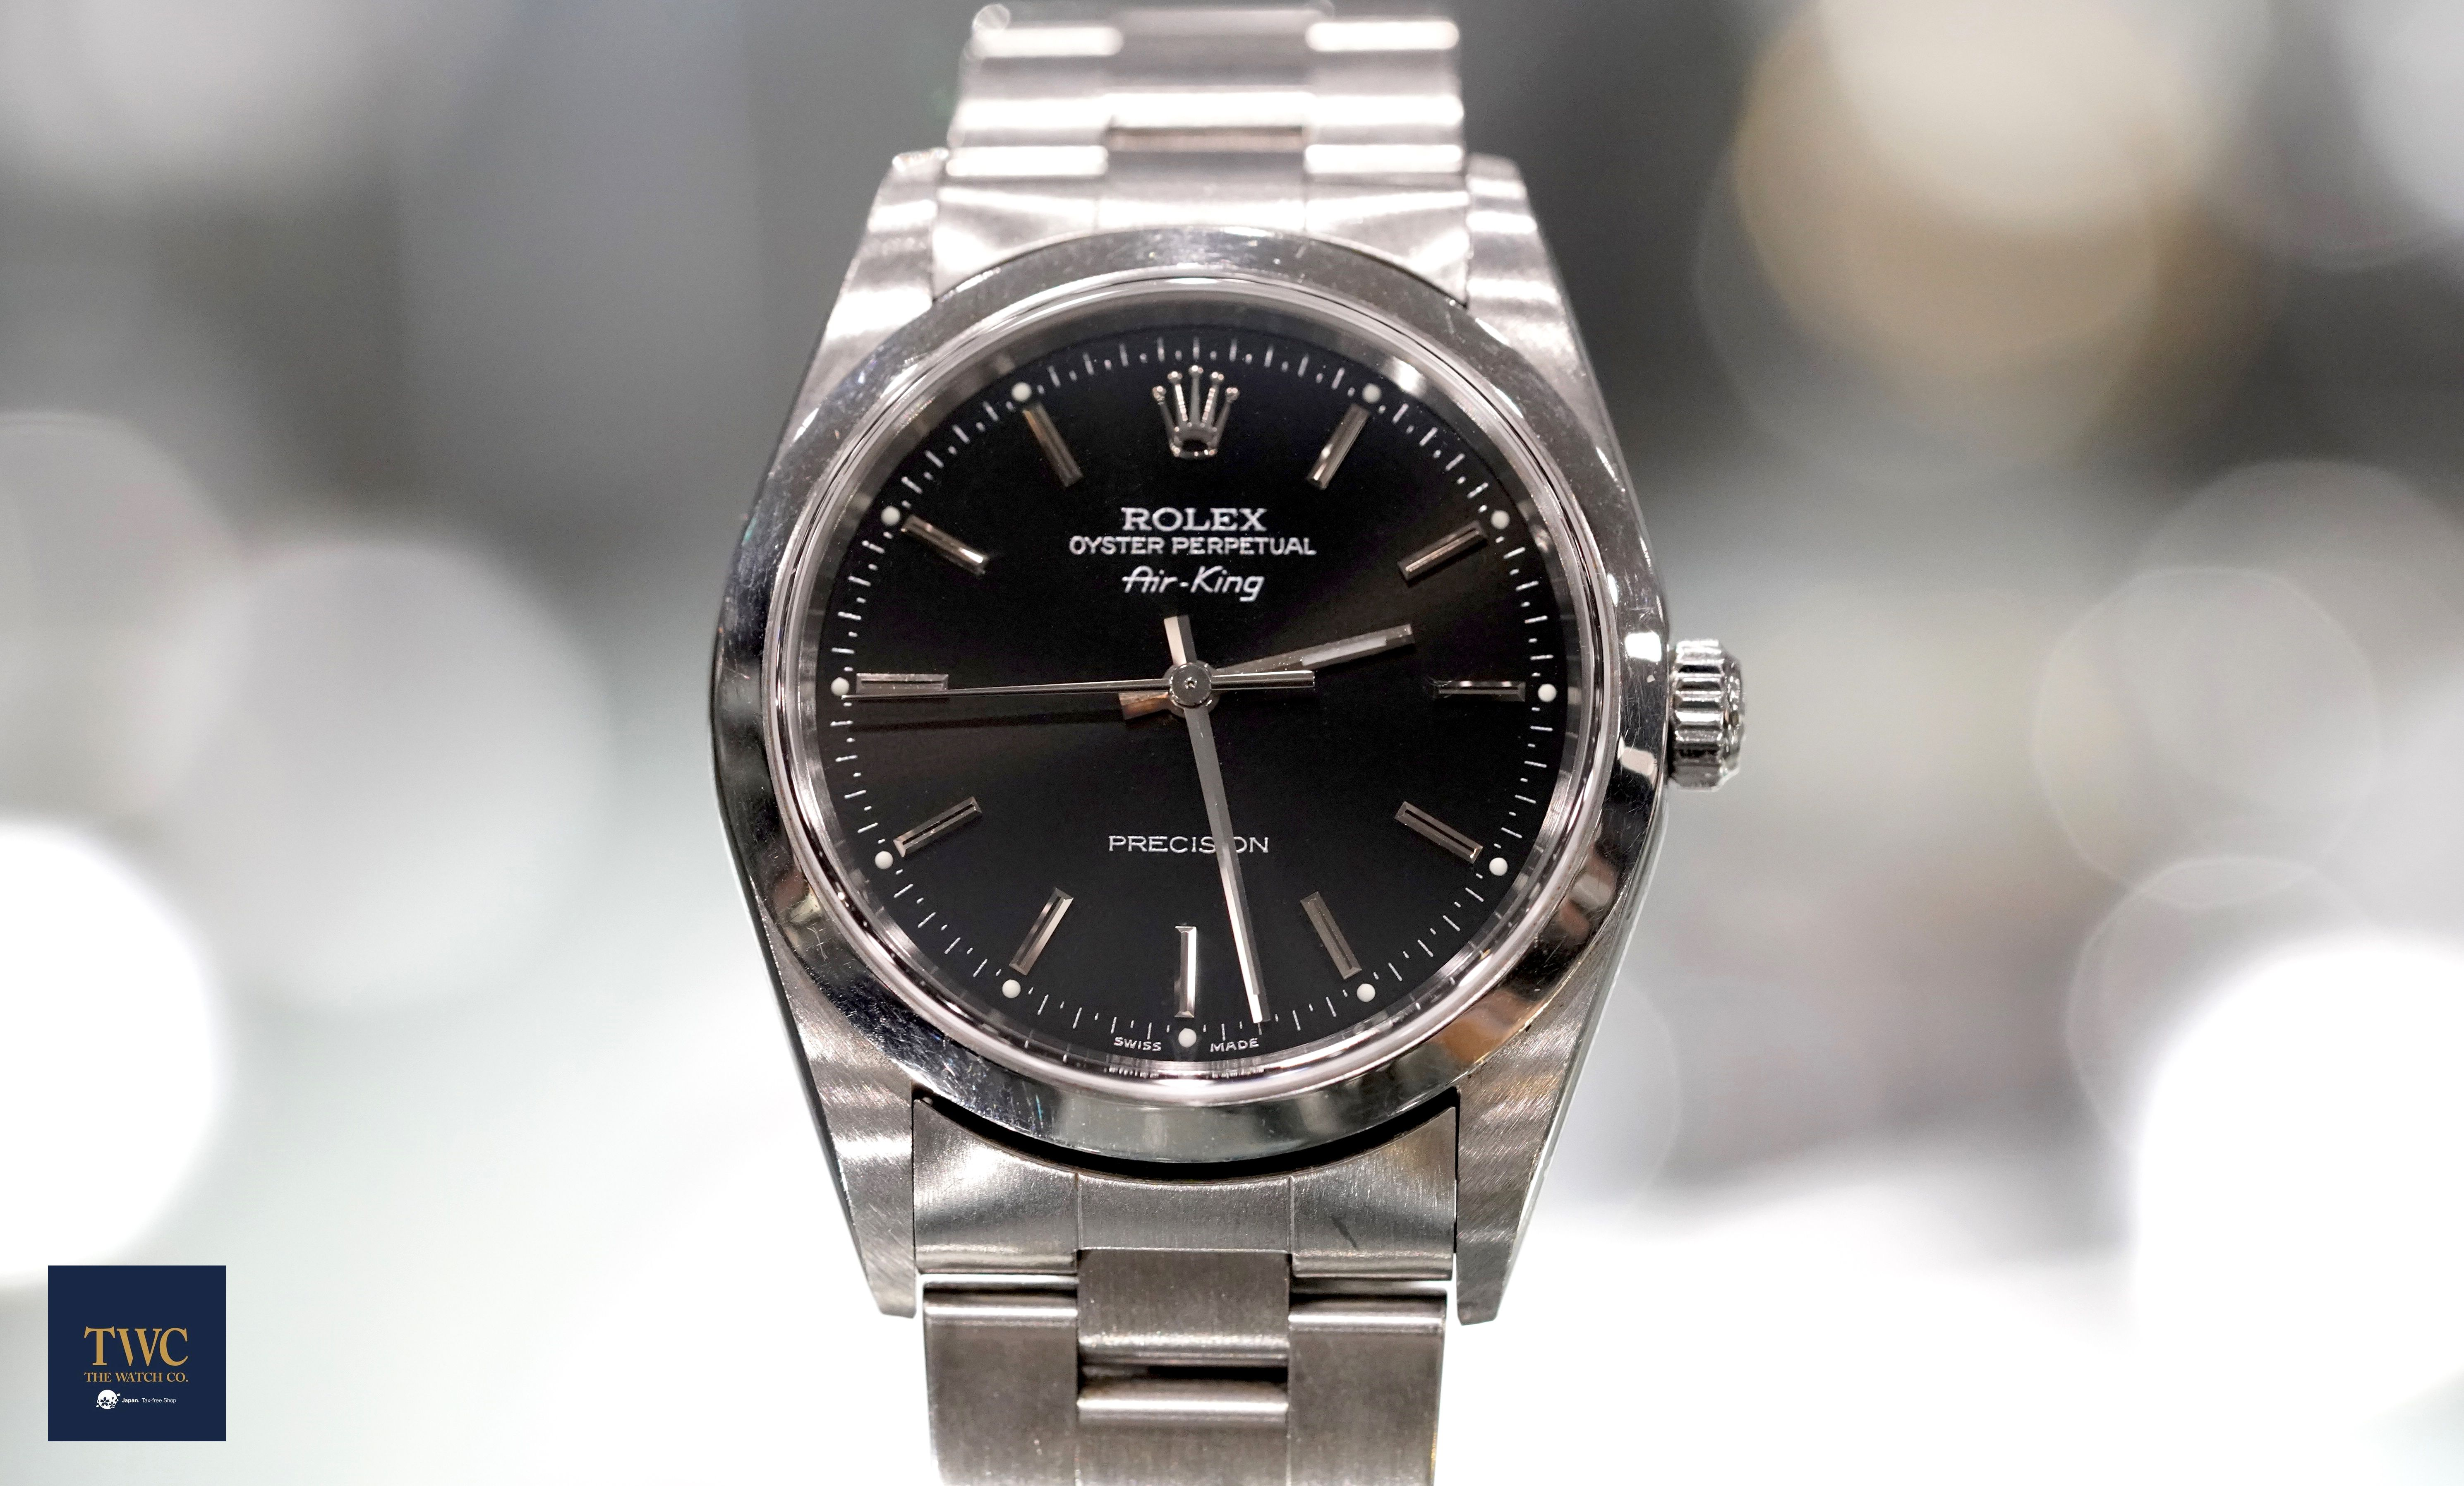 new product de310 47bbc Pre-Owned Rolex Air King Black/Steel 34mm ref. no.: 14000 ...